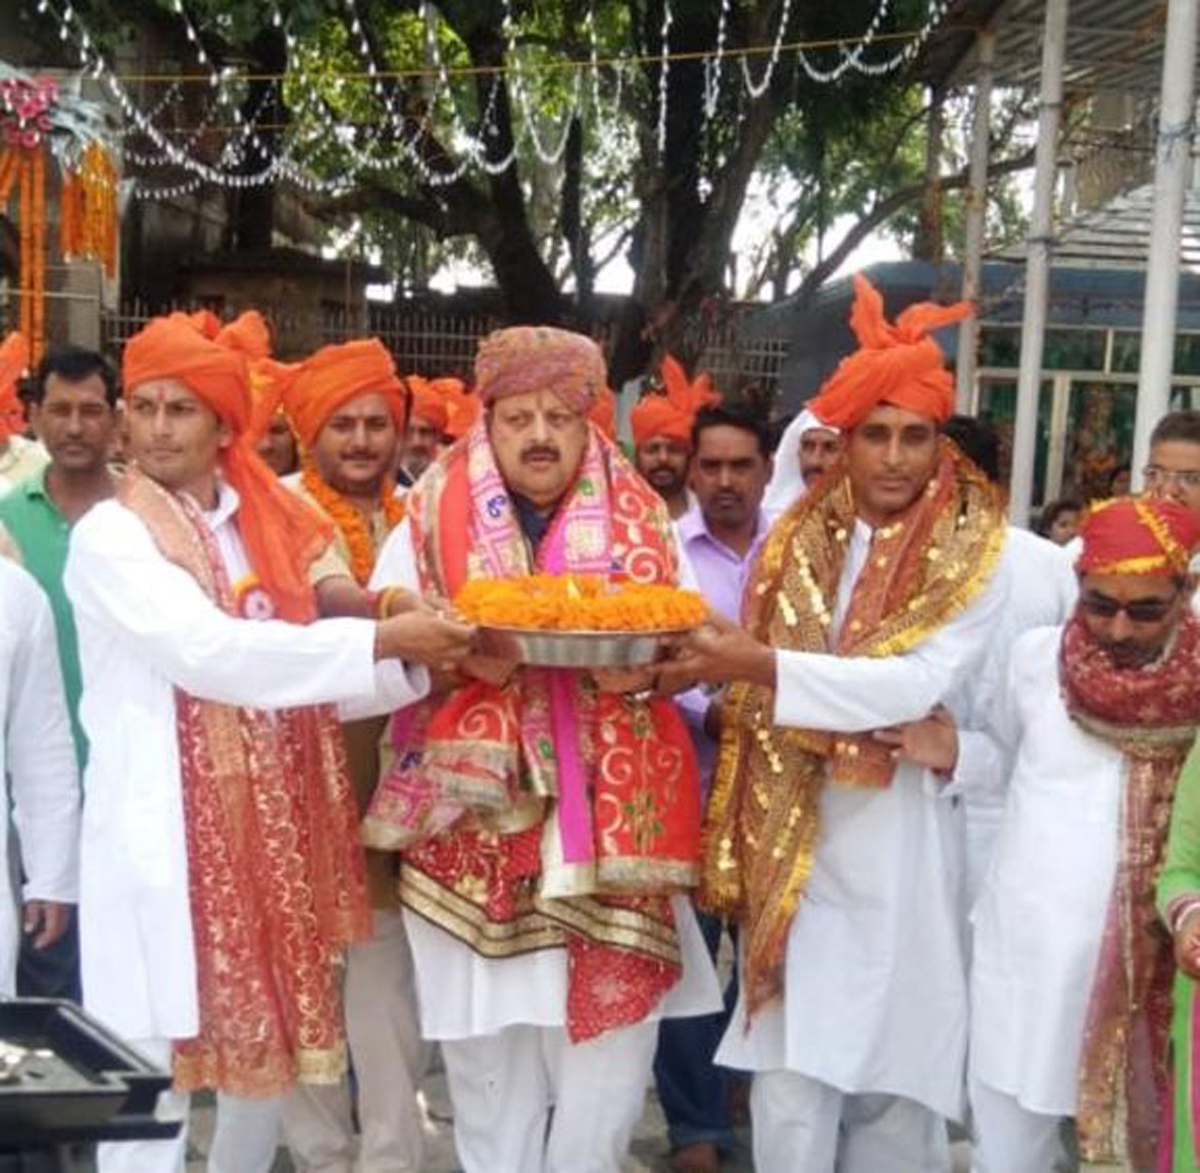 NC Provincial President Devender Singh Rana flagging off yatra from Kol Kandoli temple on Wednesday.